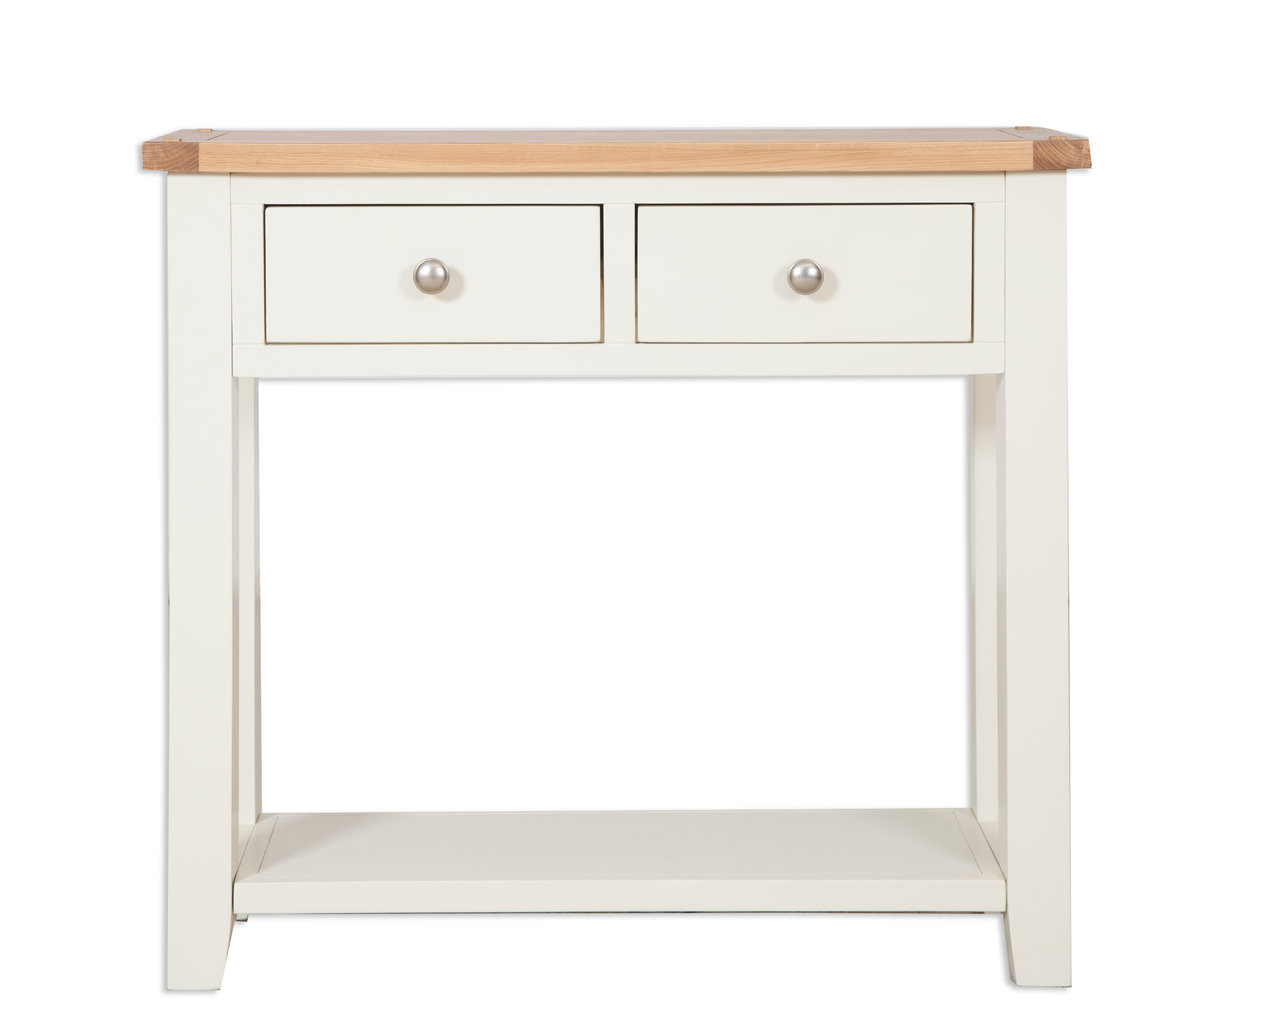 Melbourne ivory console table quality indian and oak furniture melbourne ivory console table geotapseo Gallery